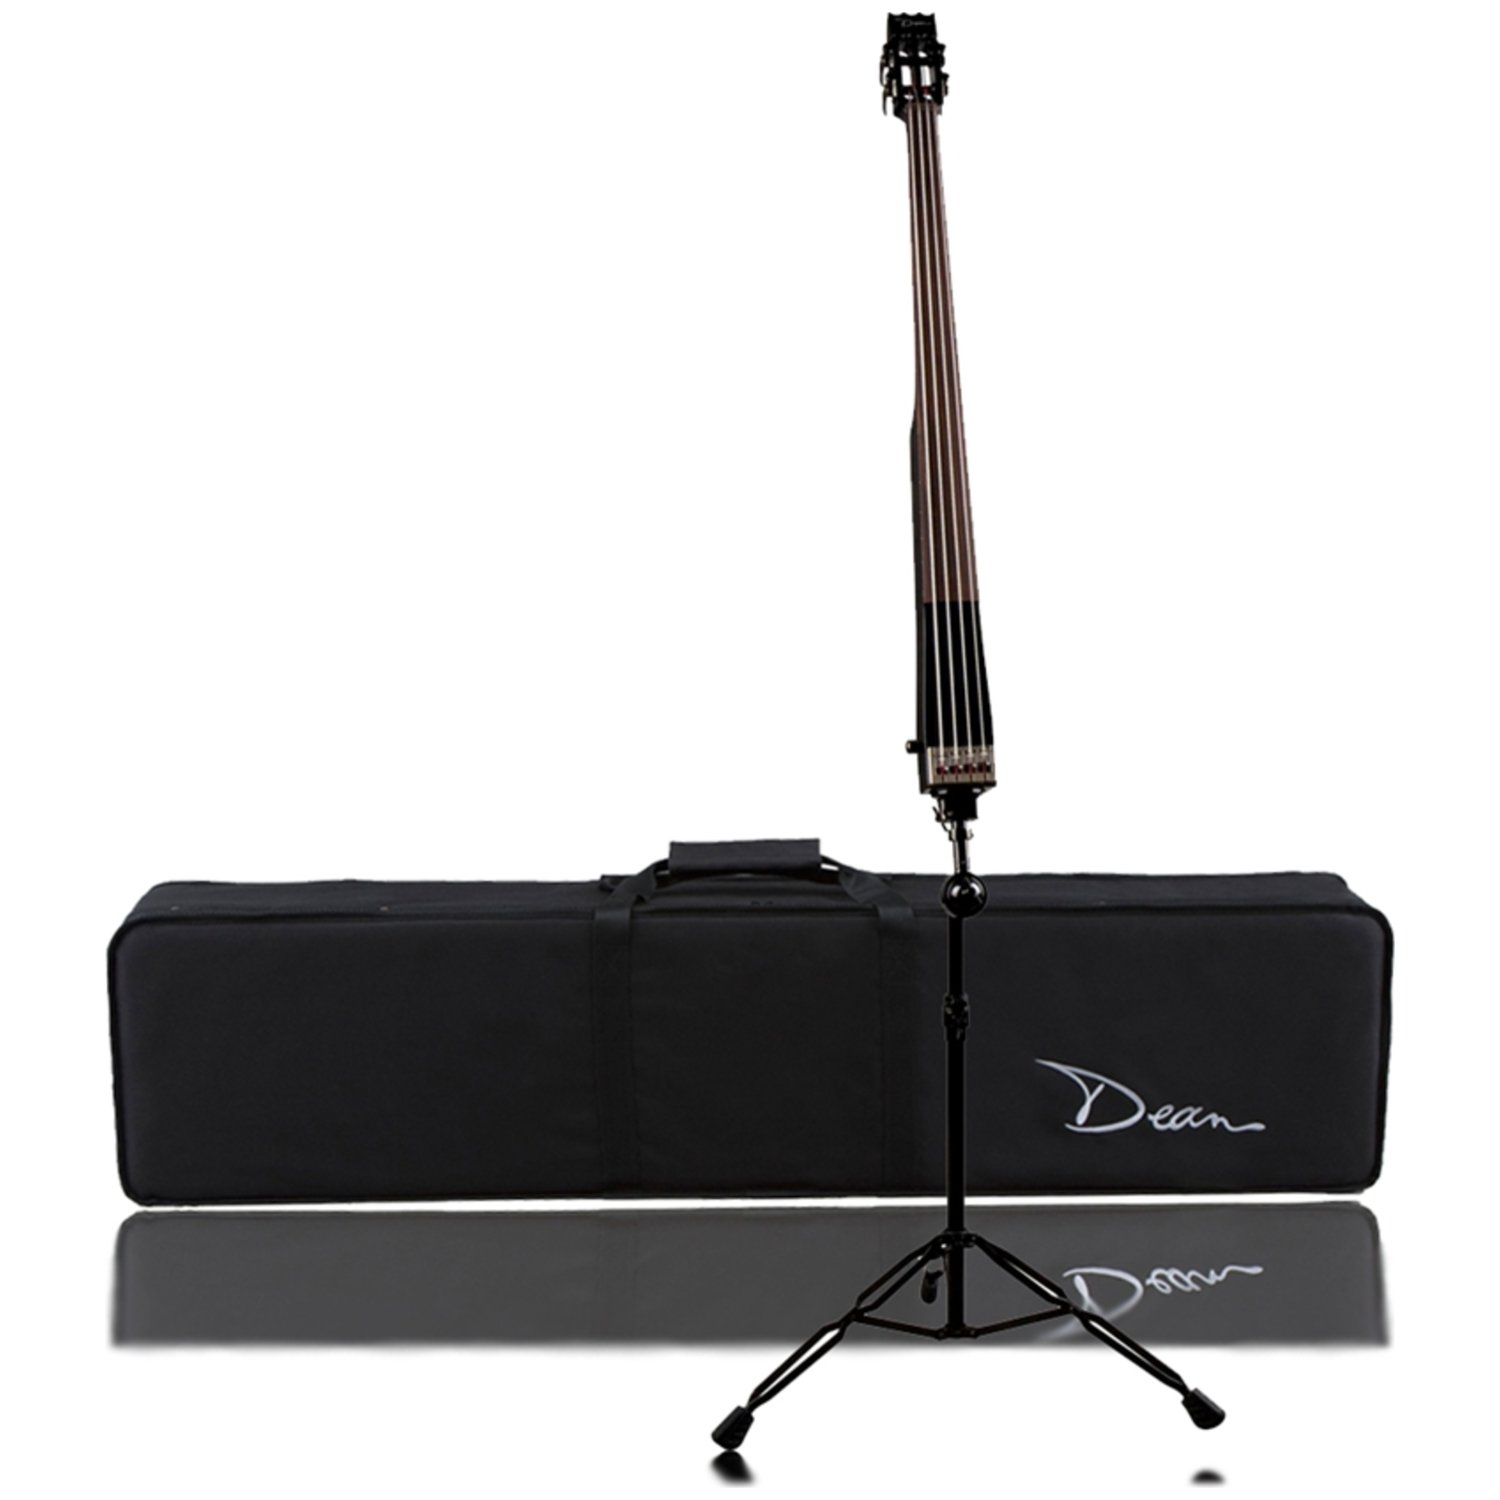 Dean Pace Bass 4-String Electric Upright Bass with Case - Classic Black